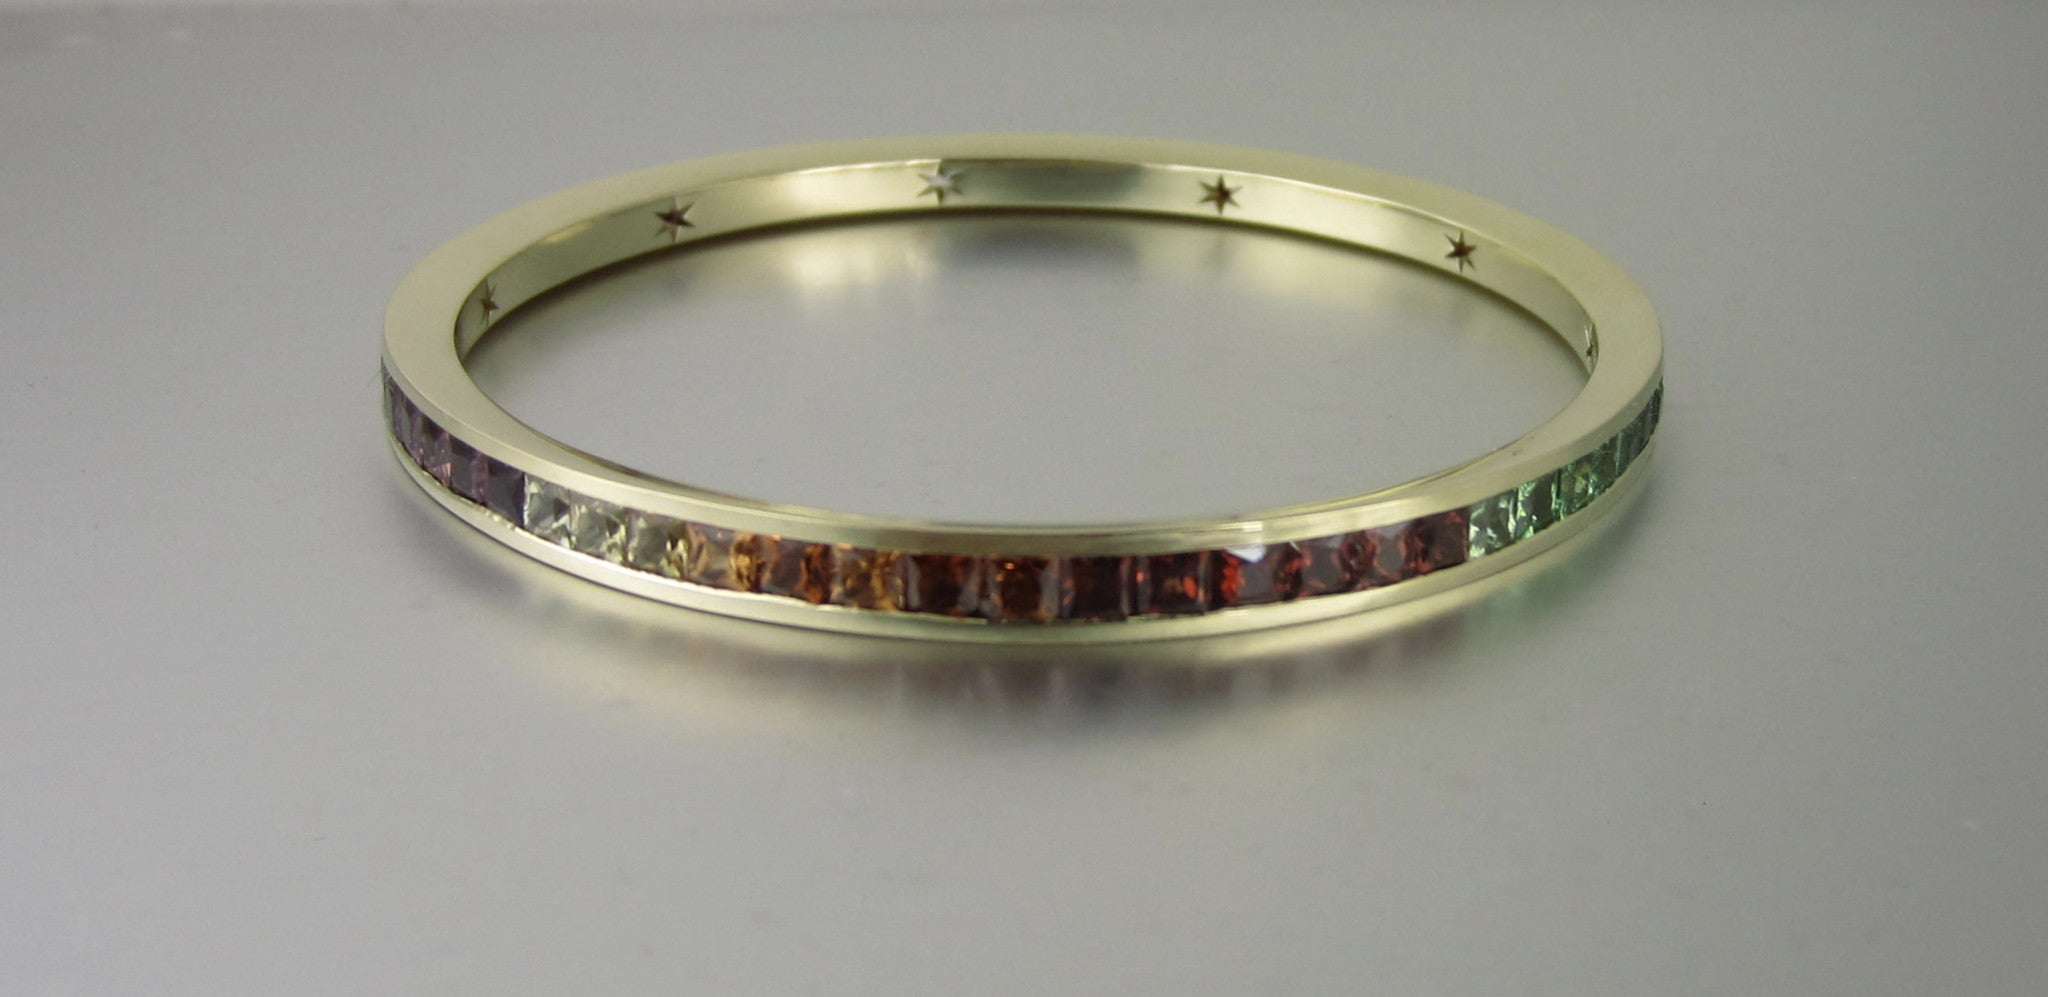 Rainbow Garnet bangle in 18ct yellow gold.